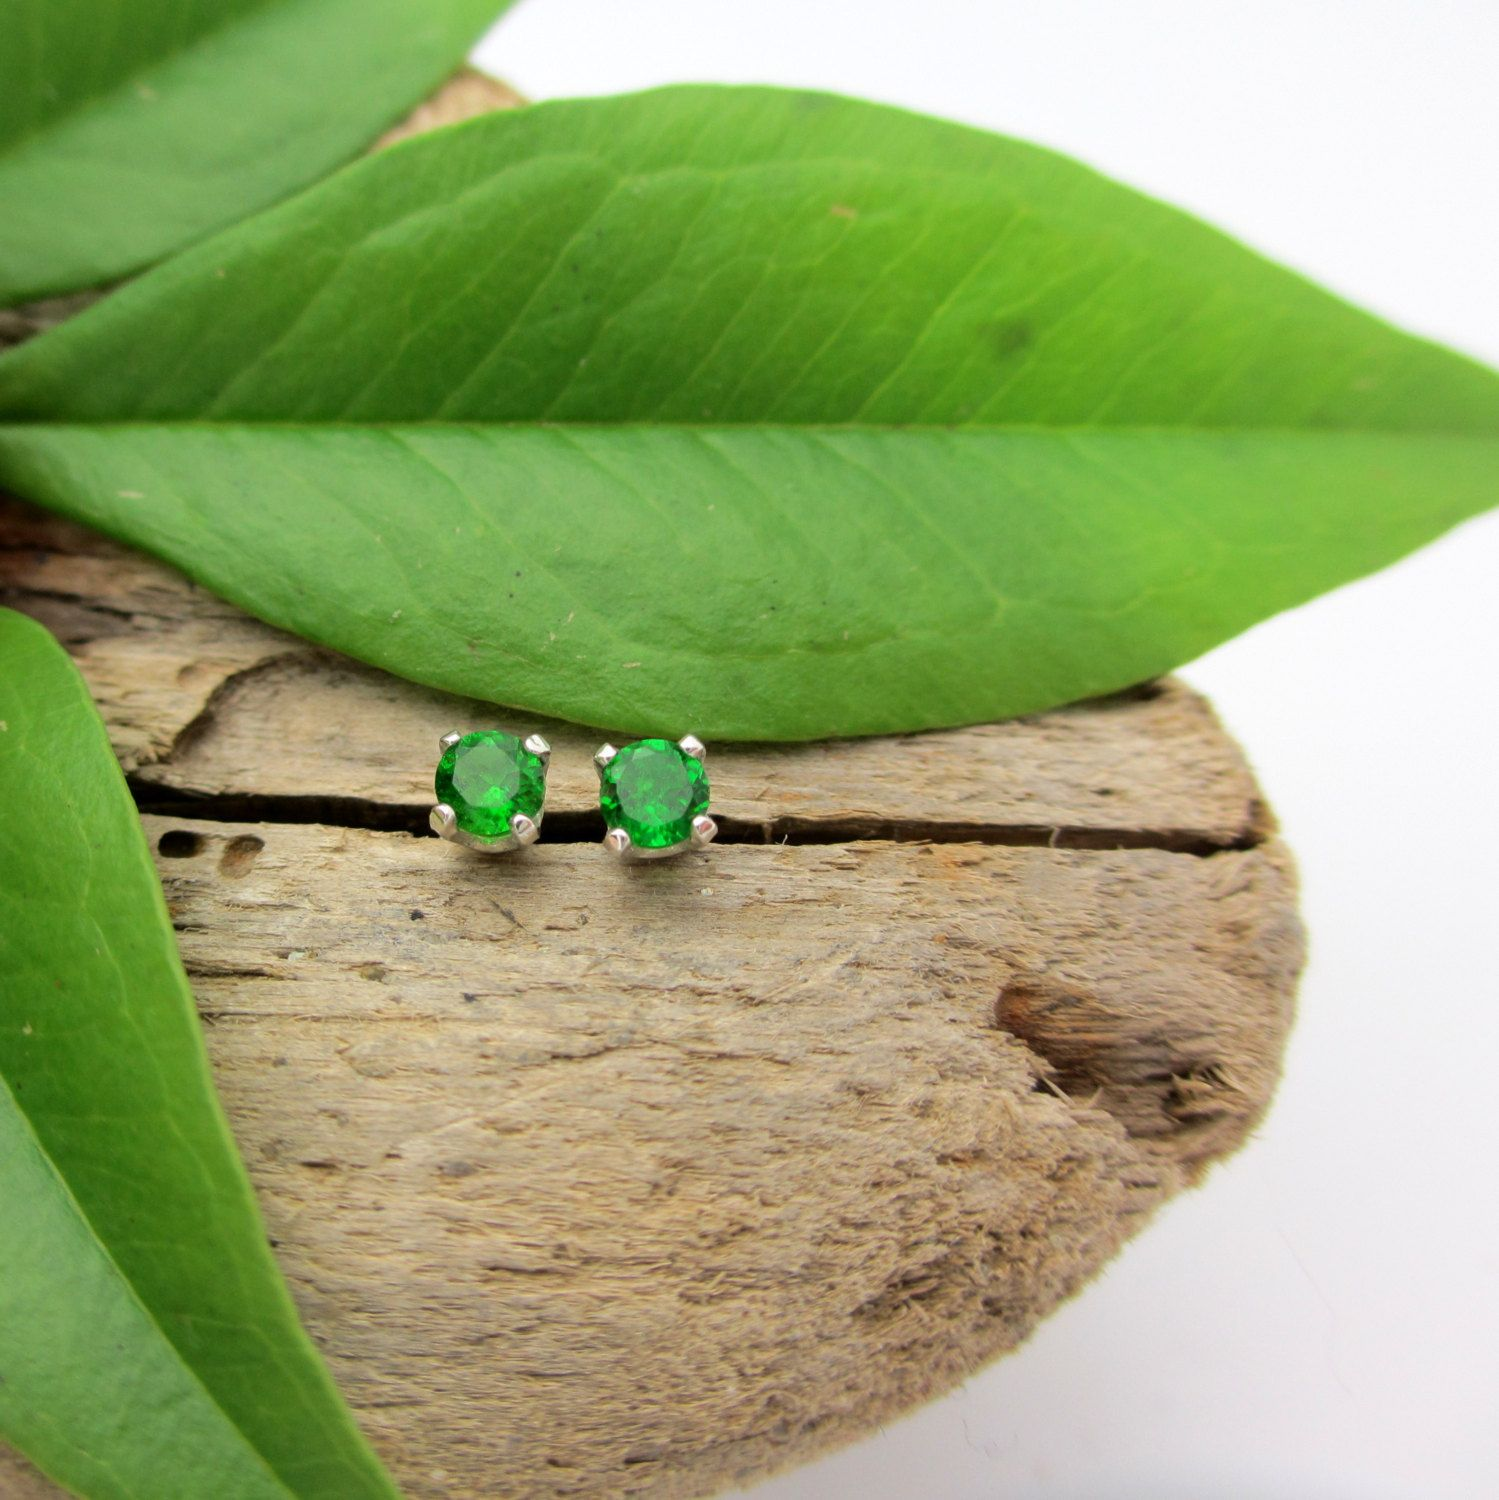 Chrome Diopside Earrings in Gold Silver Platinum or by jetflair, $35.00